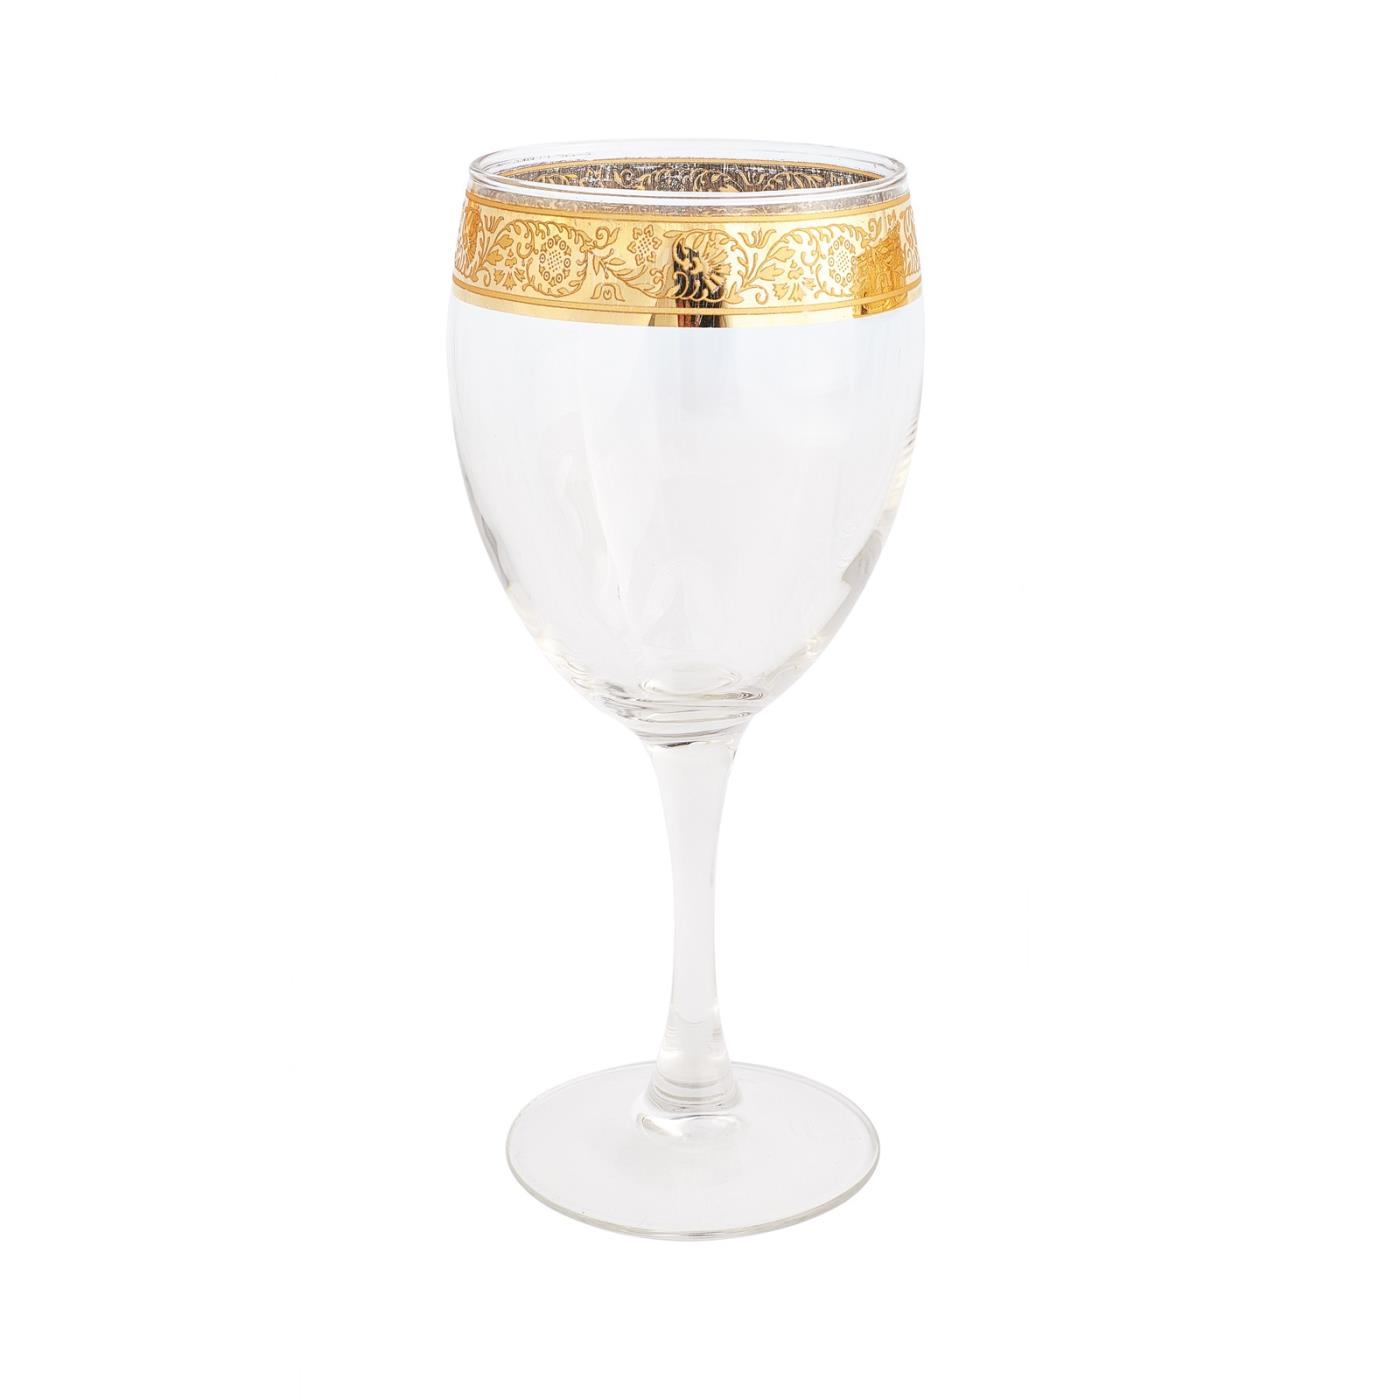 Gold Rim Collection -  Wine Glass 13 oz